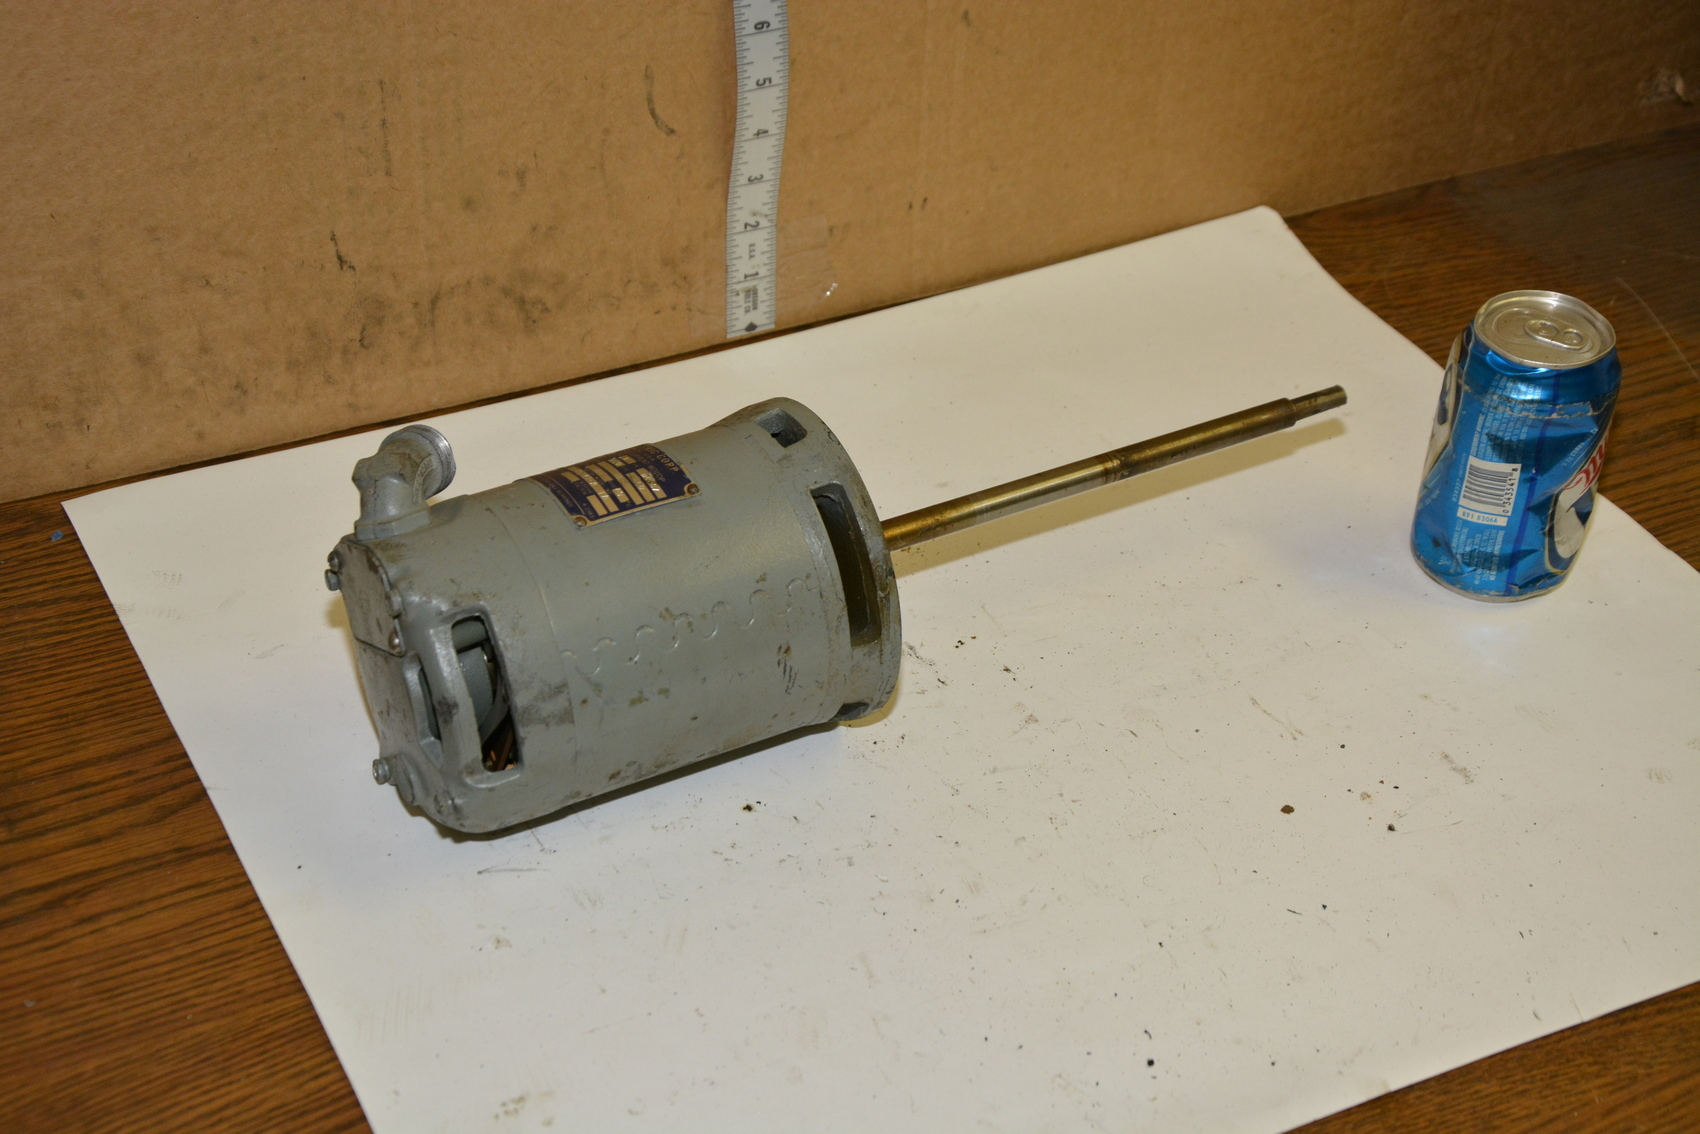 Doerr electric single phase motor 1 20 hp for a mixer or for 1 20 hp electric motor